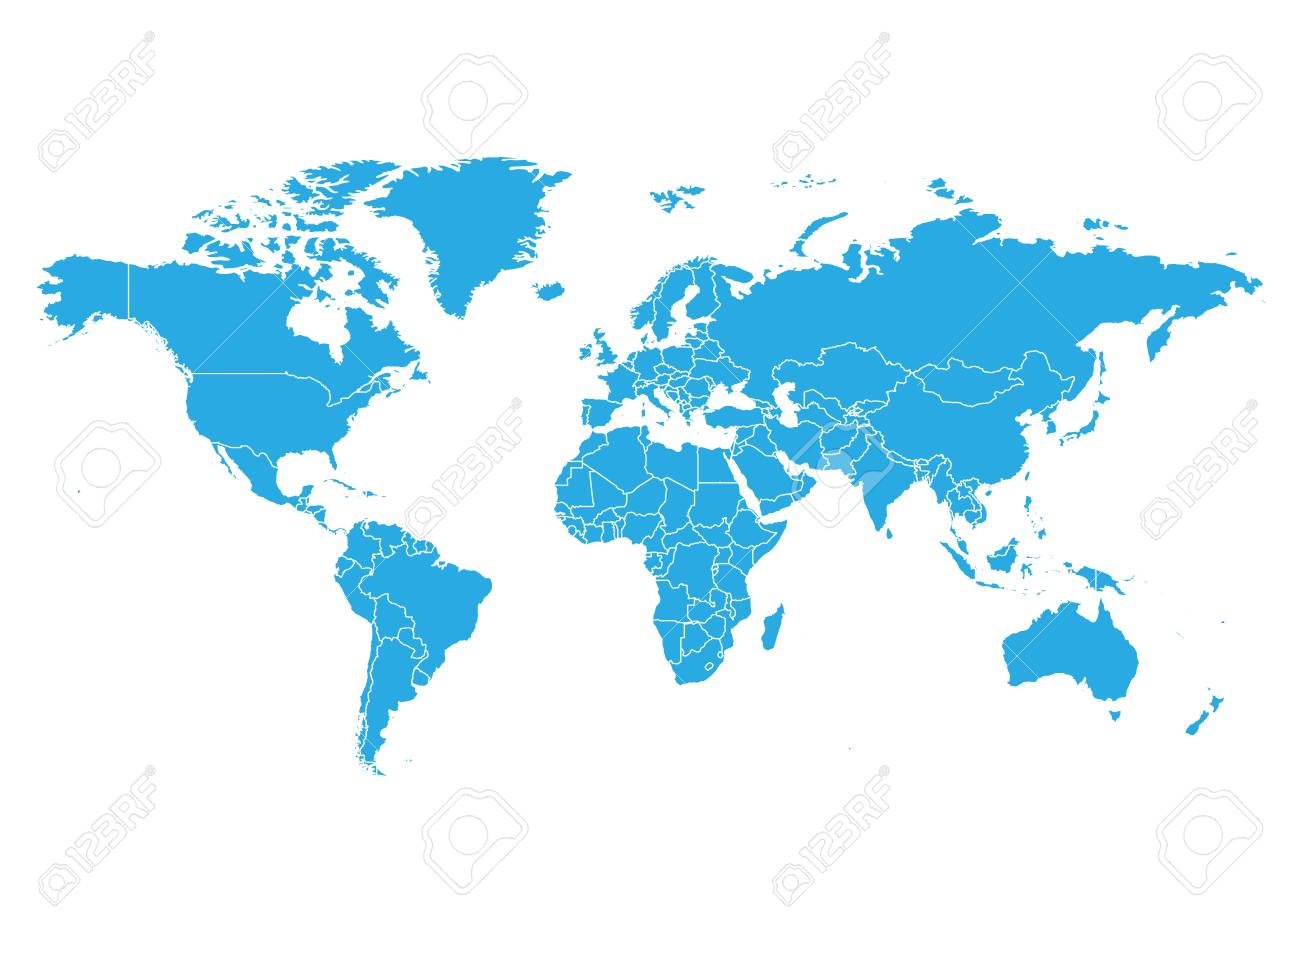 World map in blue color on white background high detail blank vector world map in blue color on white background high detail blank political map vector illustration with labeled compound path of each country gumiabroncs Image collections